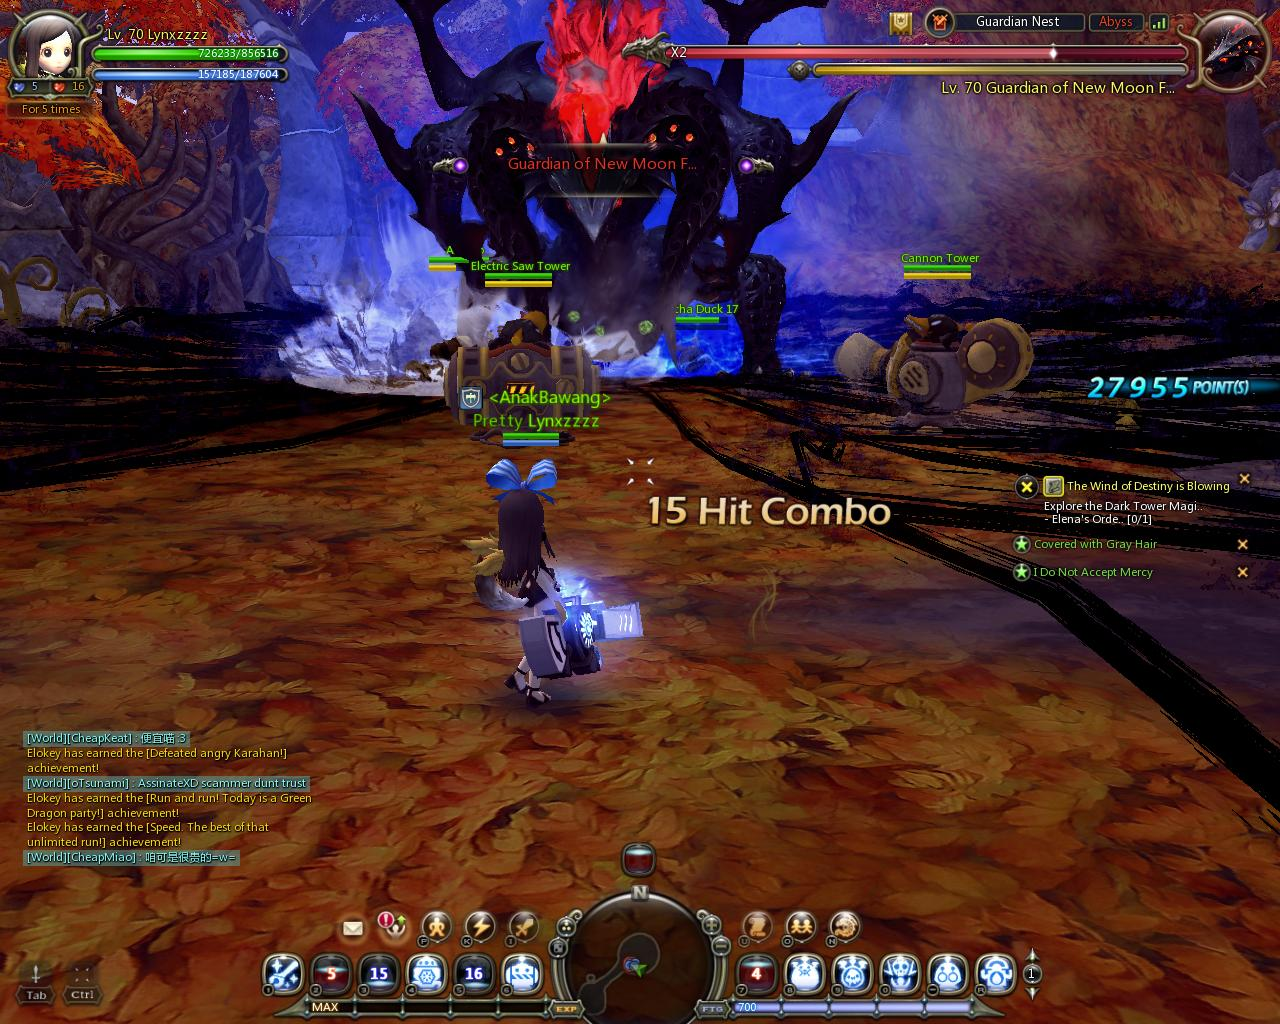 Dragon Nest Indonesia Guardian Nest Guide